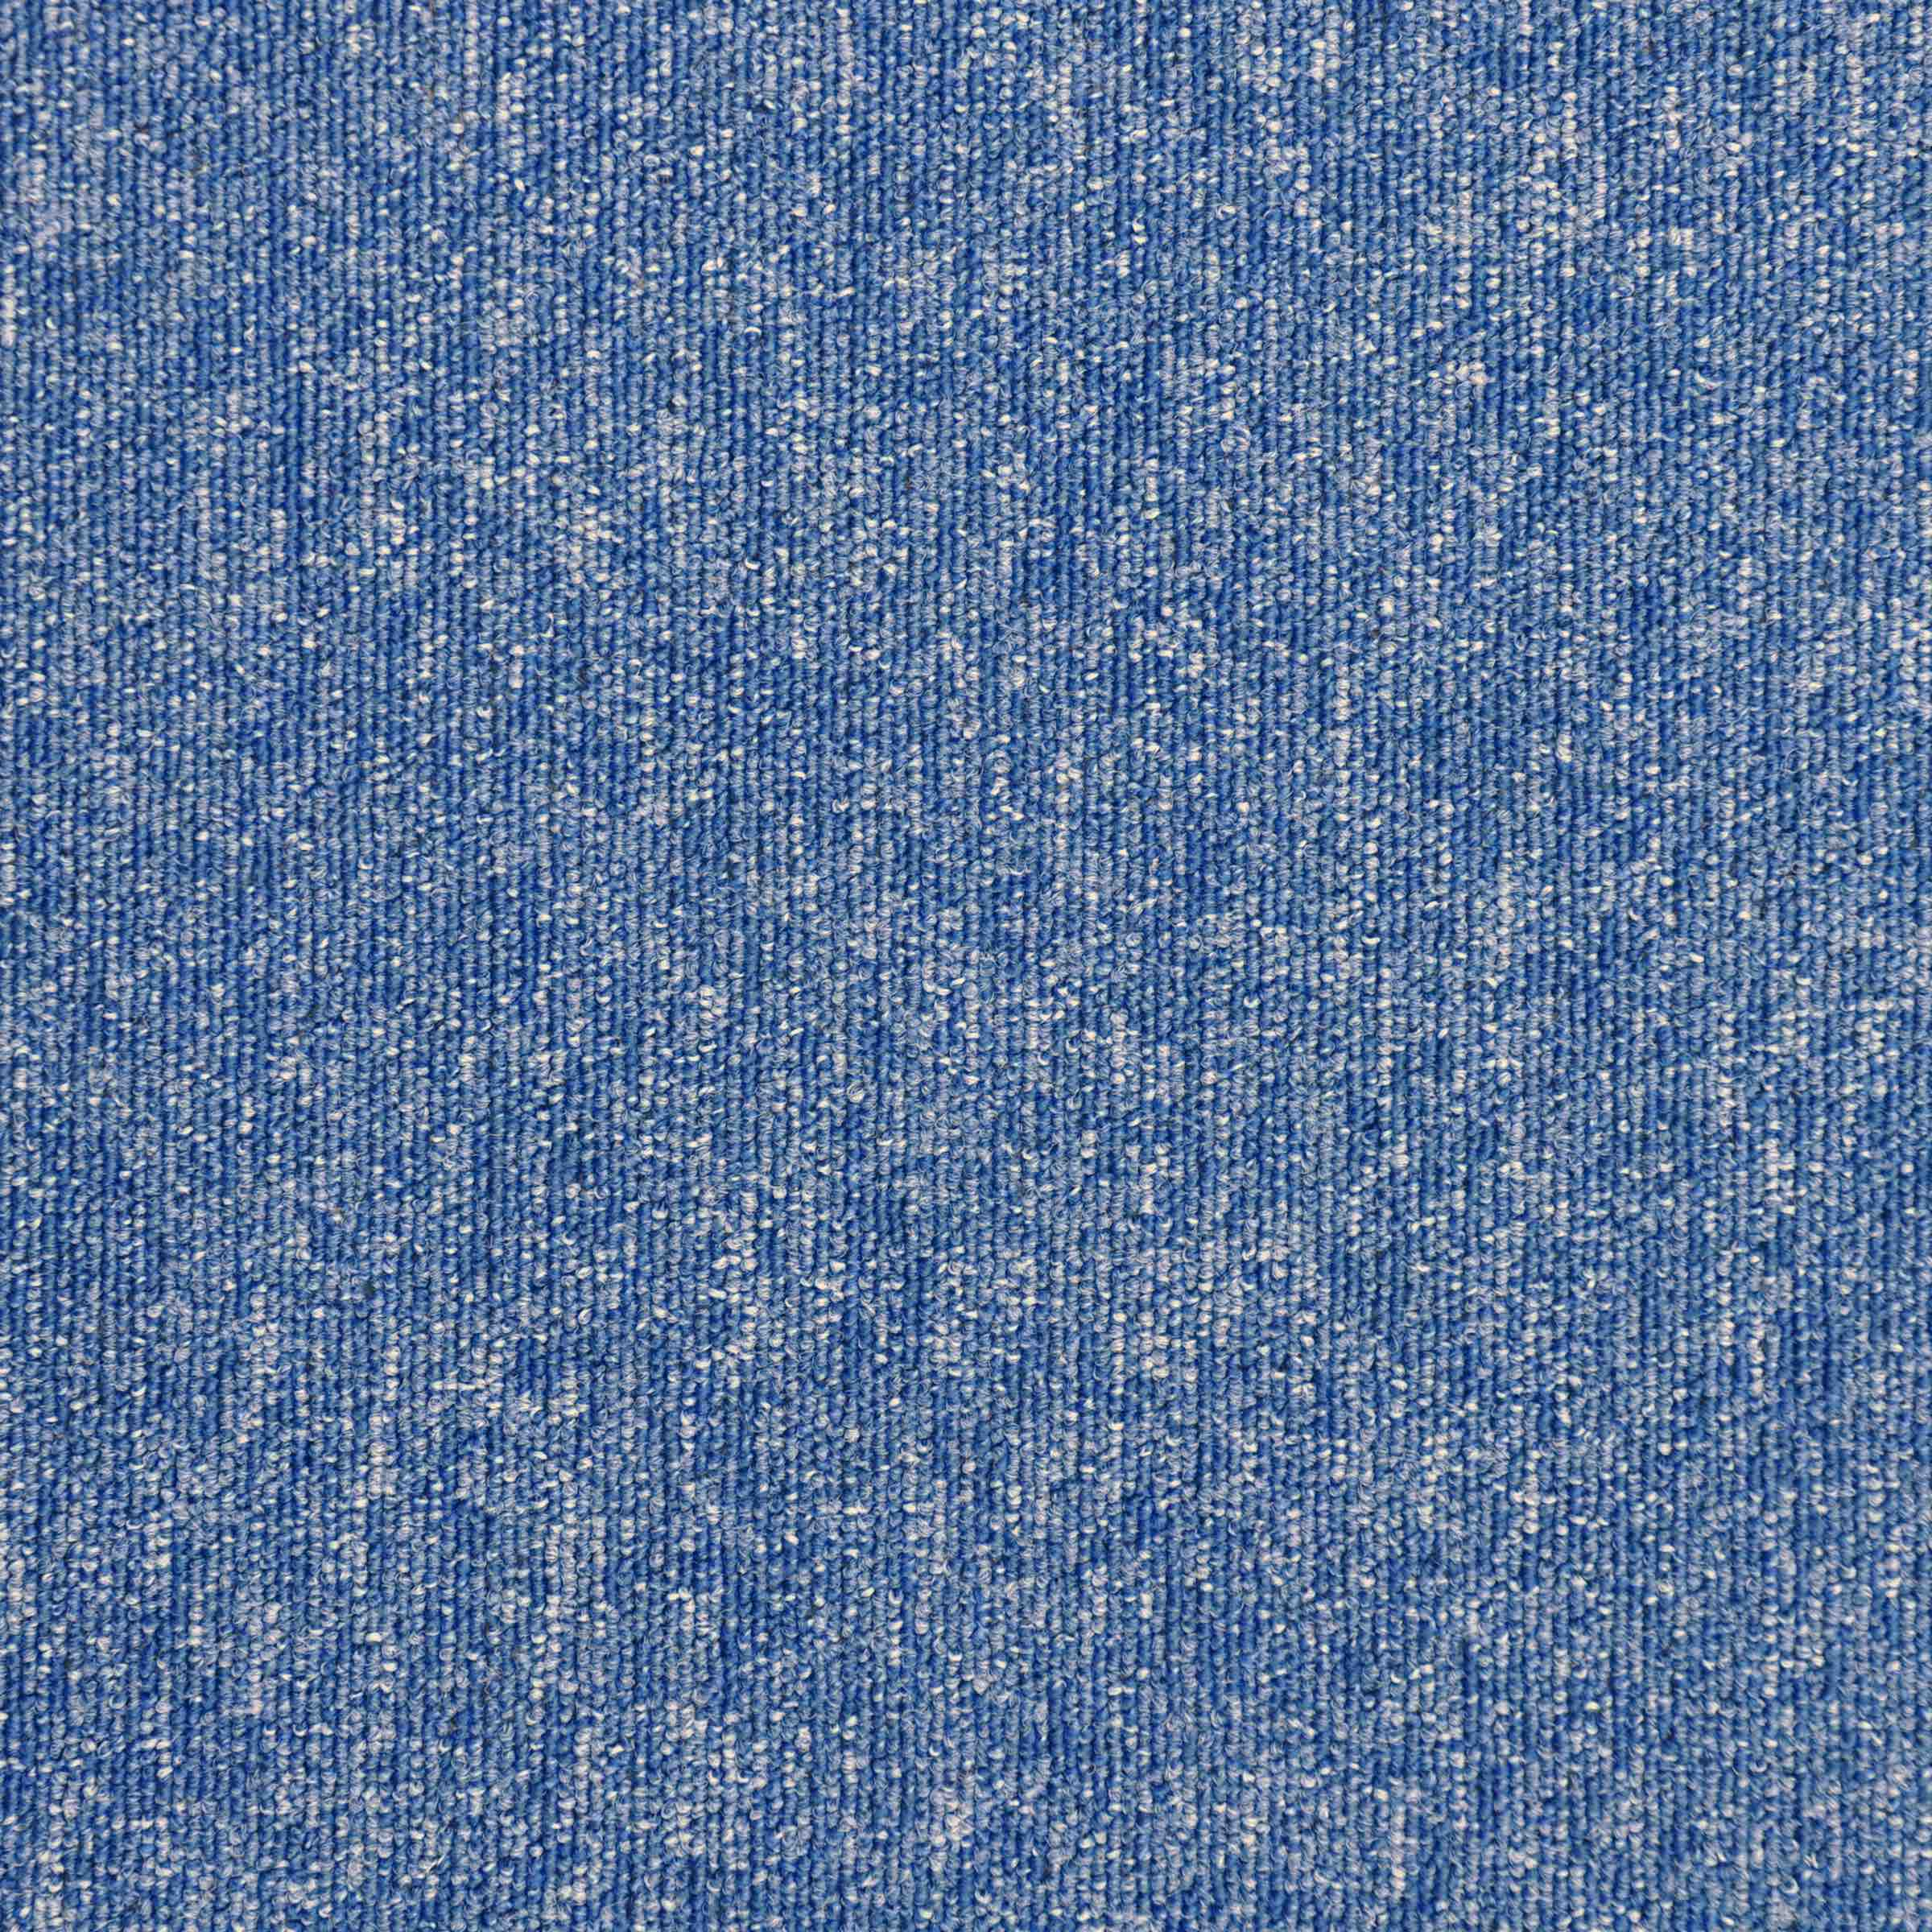 Vital | 6013 | Paragon Carpet Tiles | Commercial Carpet Tiles